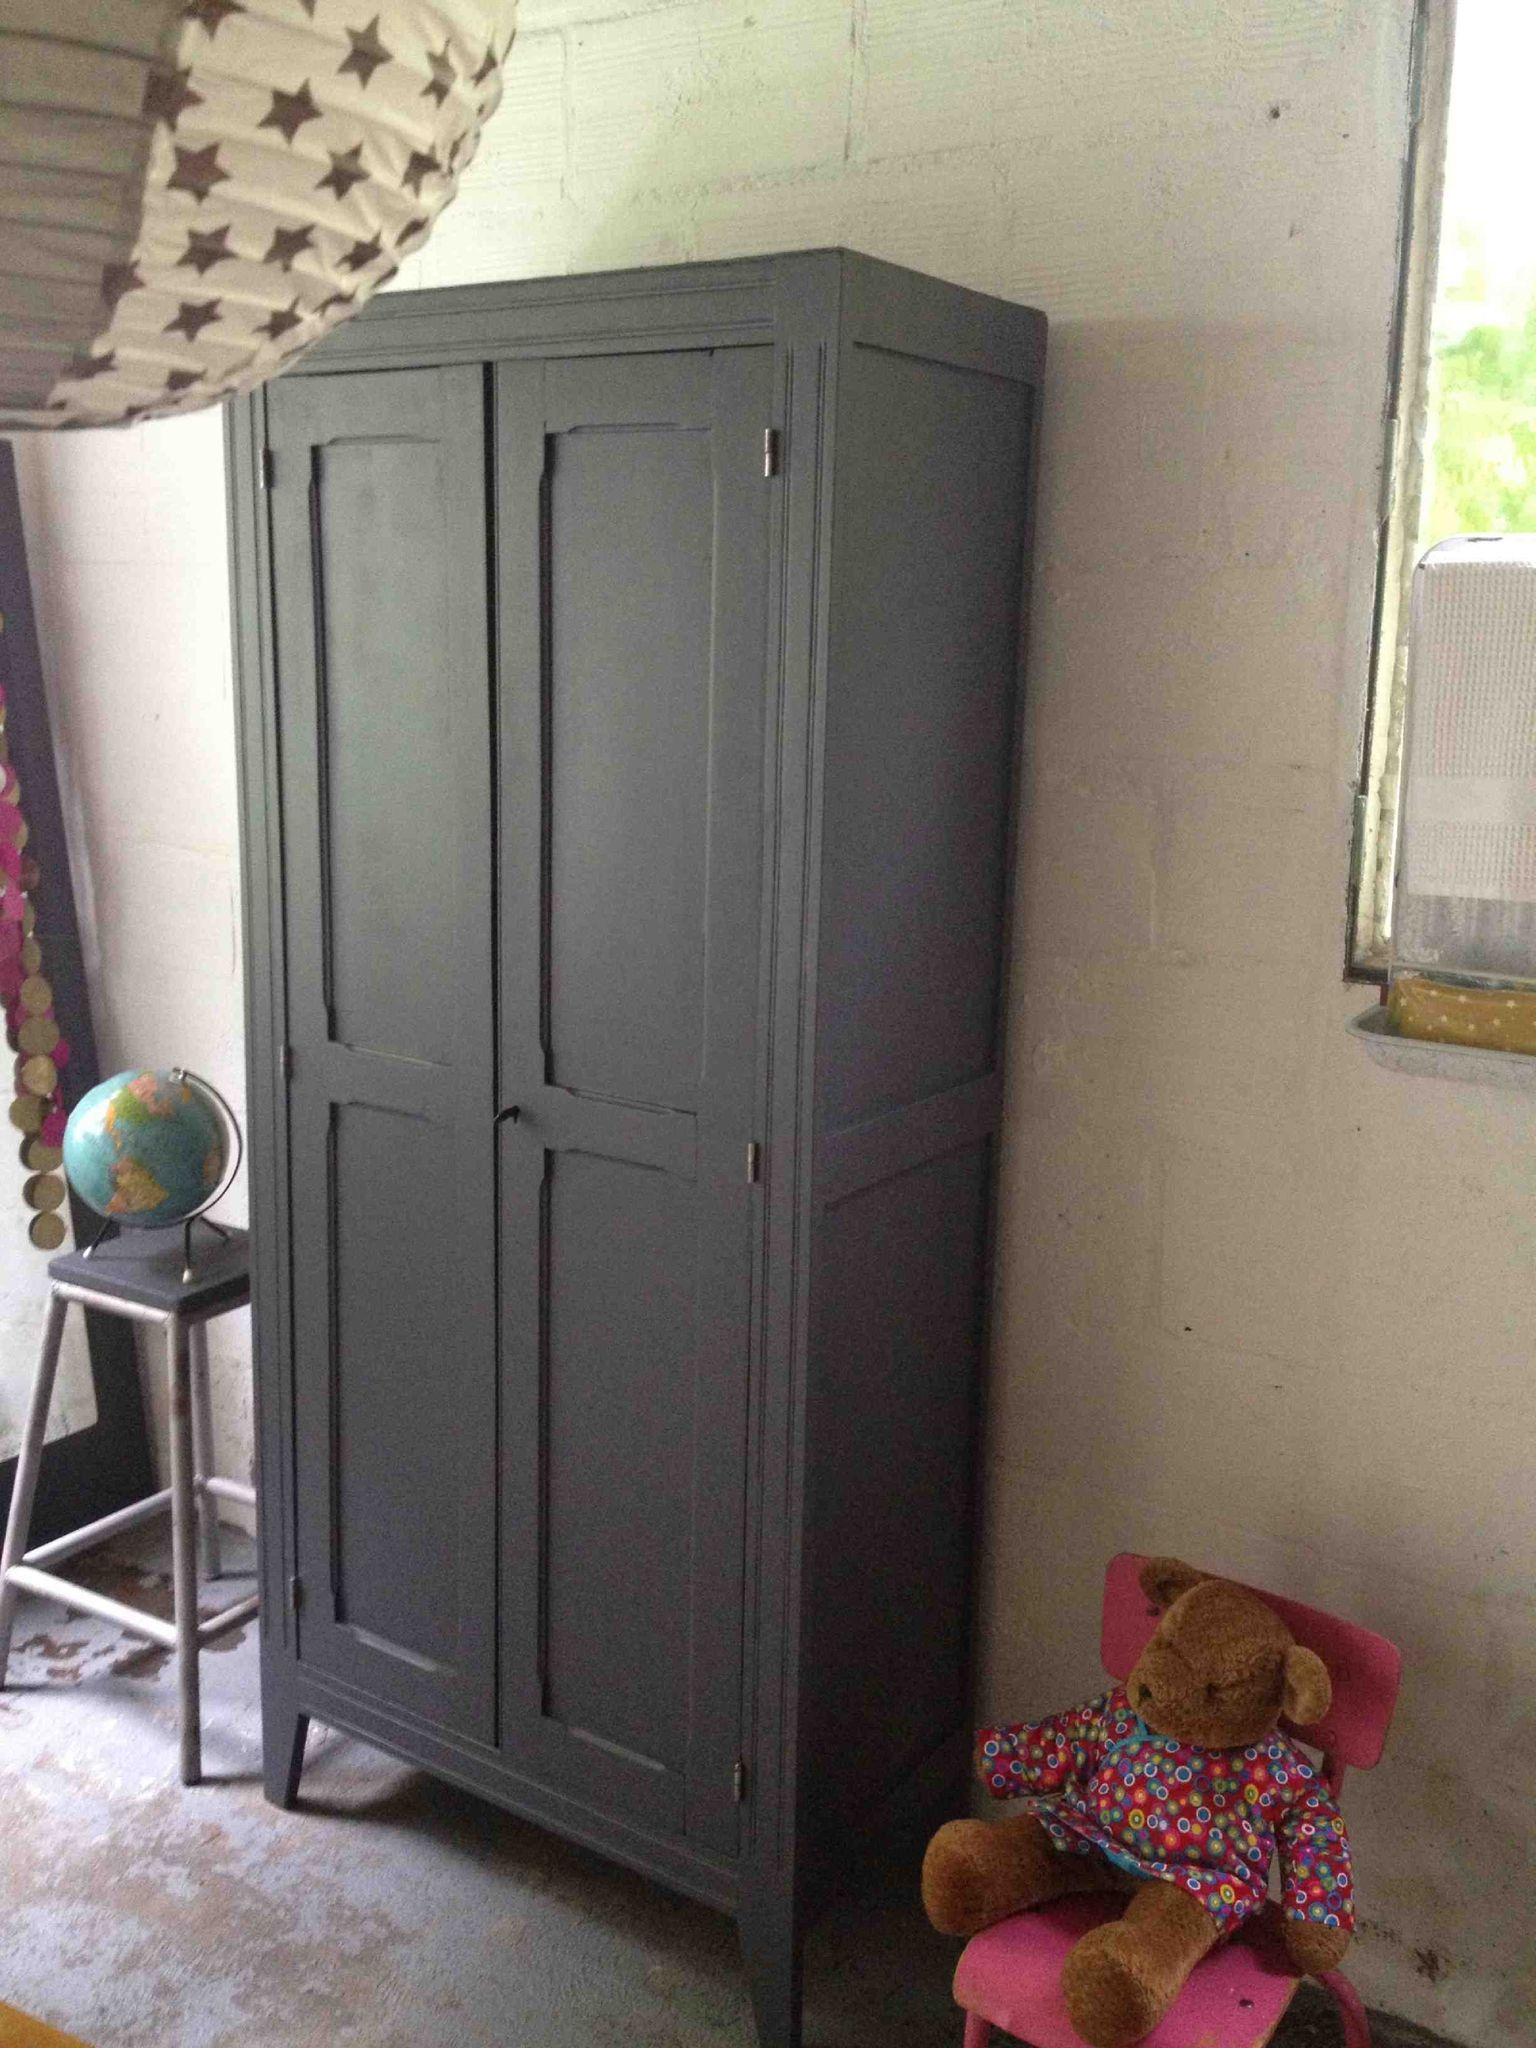 armoire parisienne gray home armoire wardrobe redo ideas pinterest armoires shaby chic. Black Bedroom Furniture Sets. Home Design Ideas